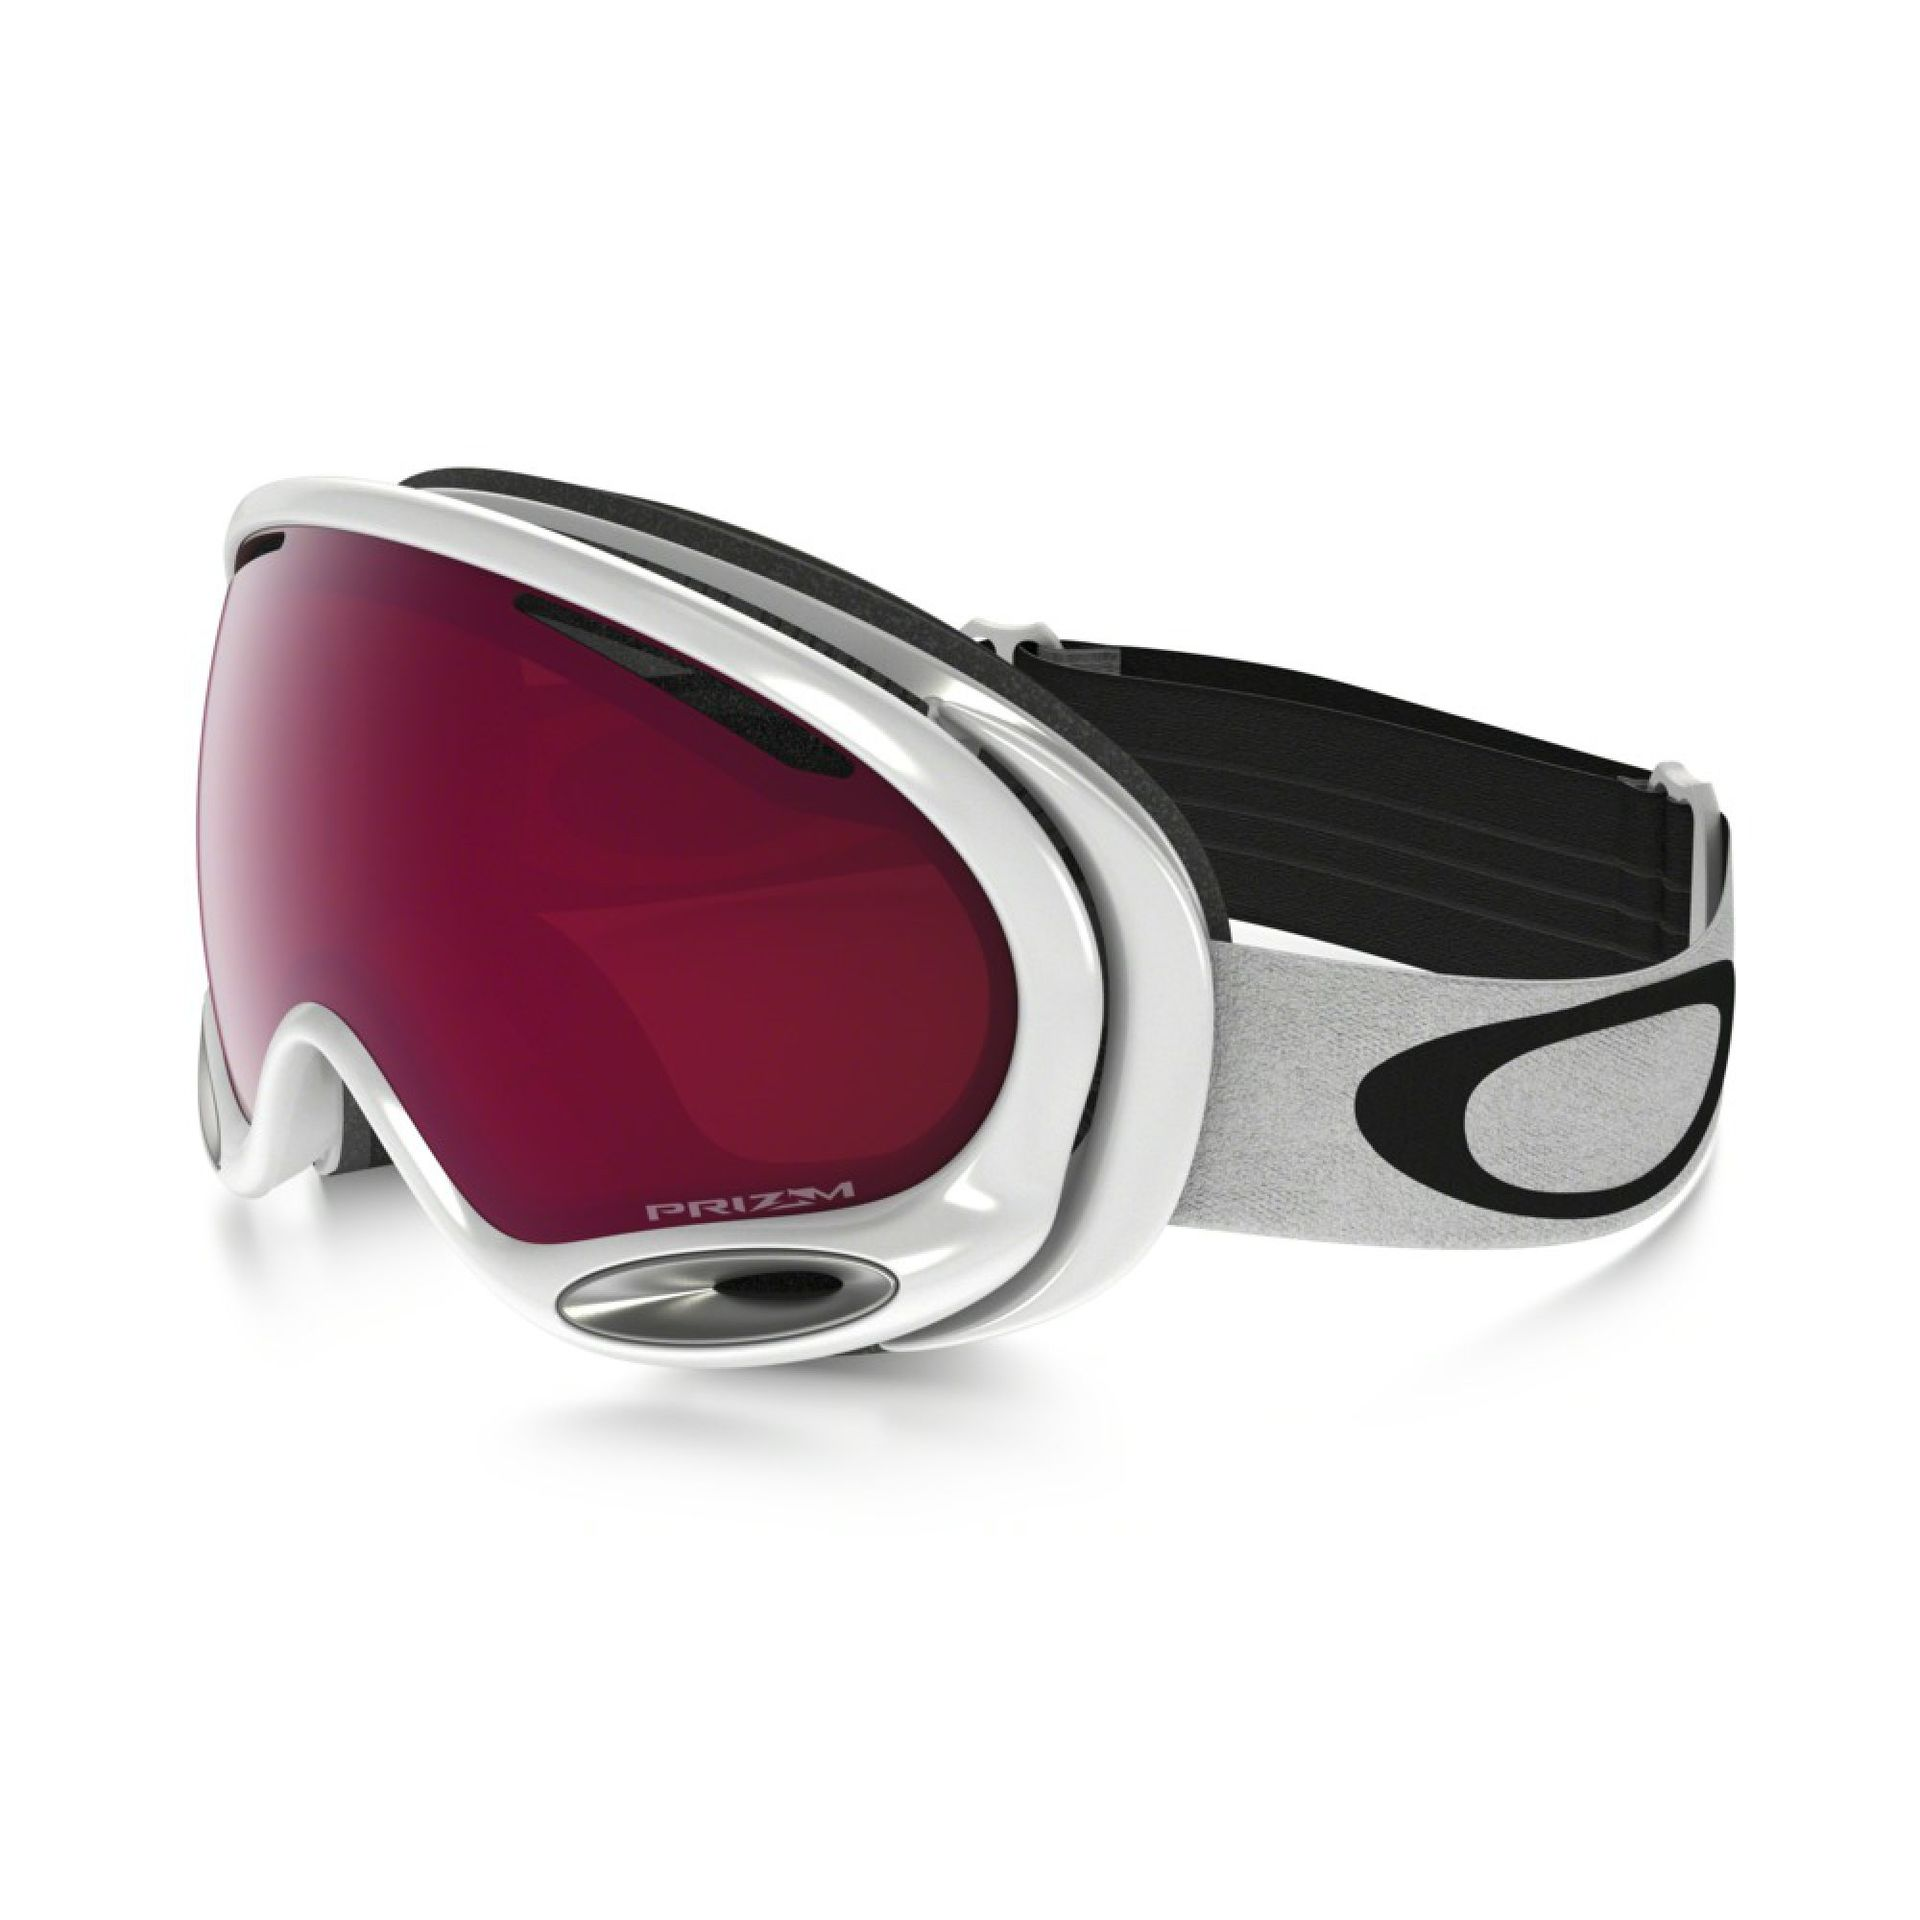 GOGLE OAKLEY A-FRAME 2 0 POLISHED WHITE PRIZM ROSE